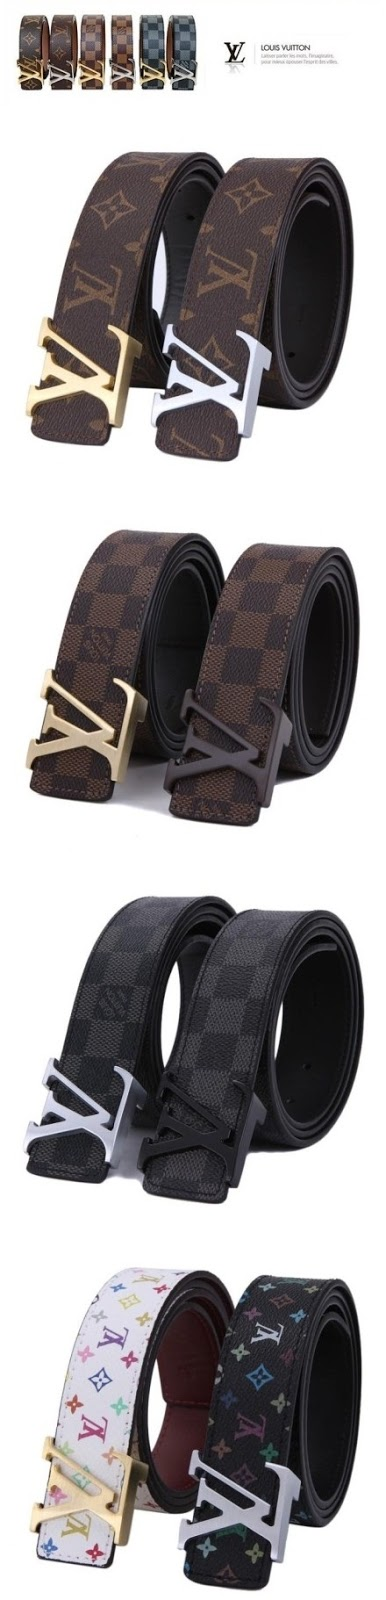 a56db62af2d2 Wish List- Louis Vuitton Belts